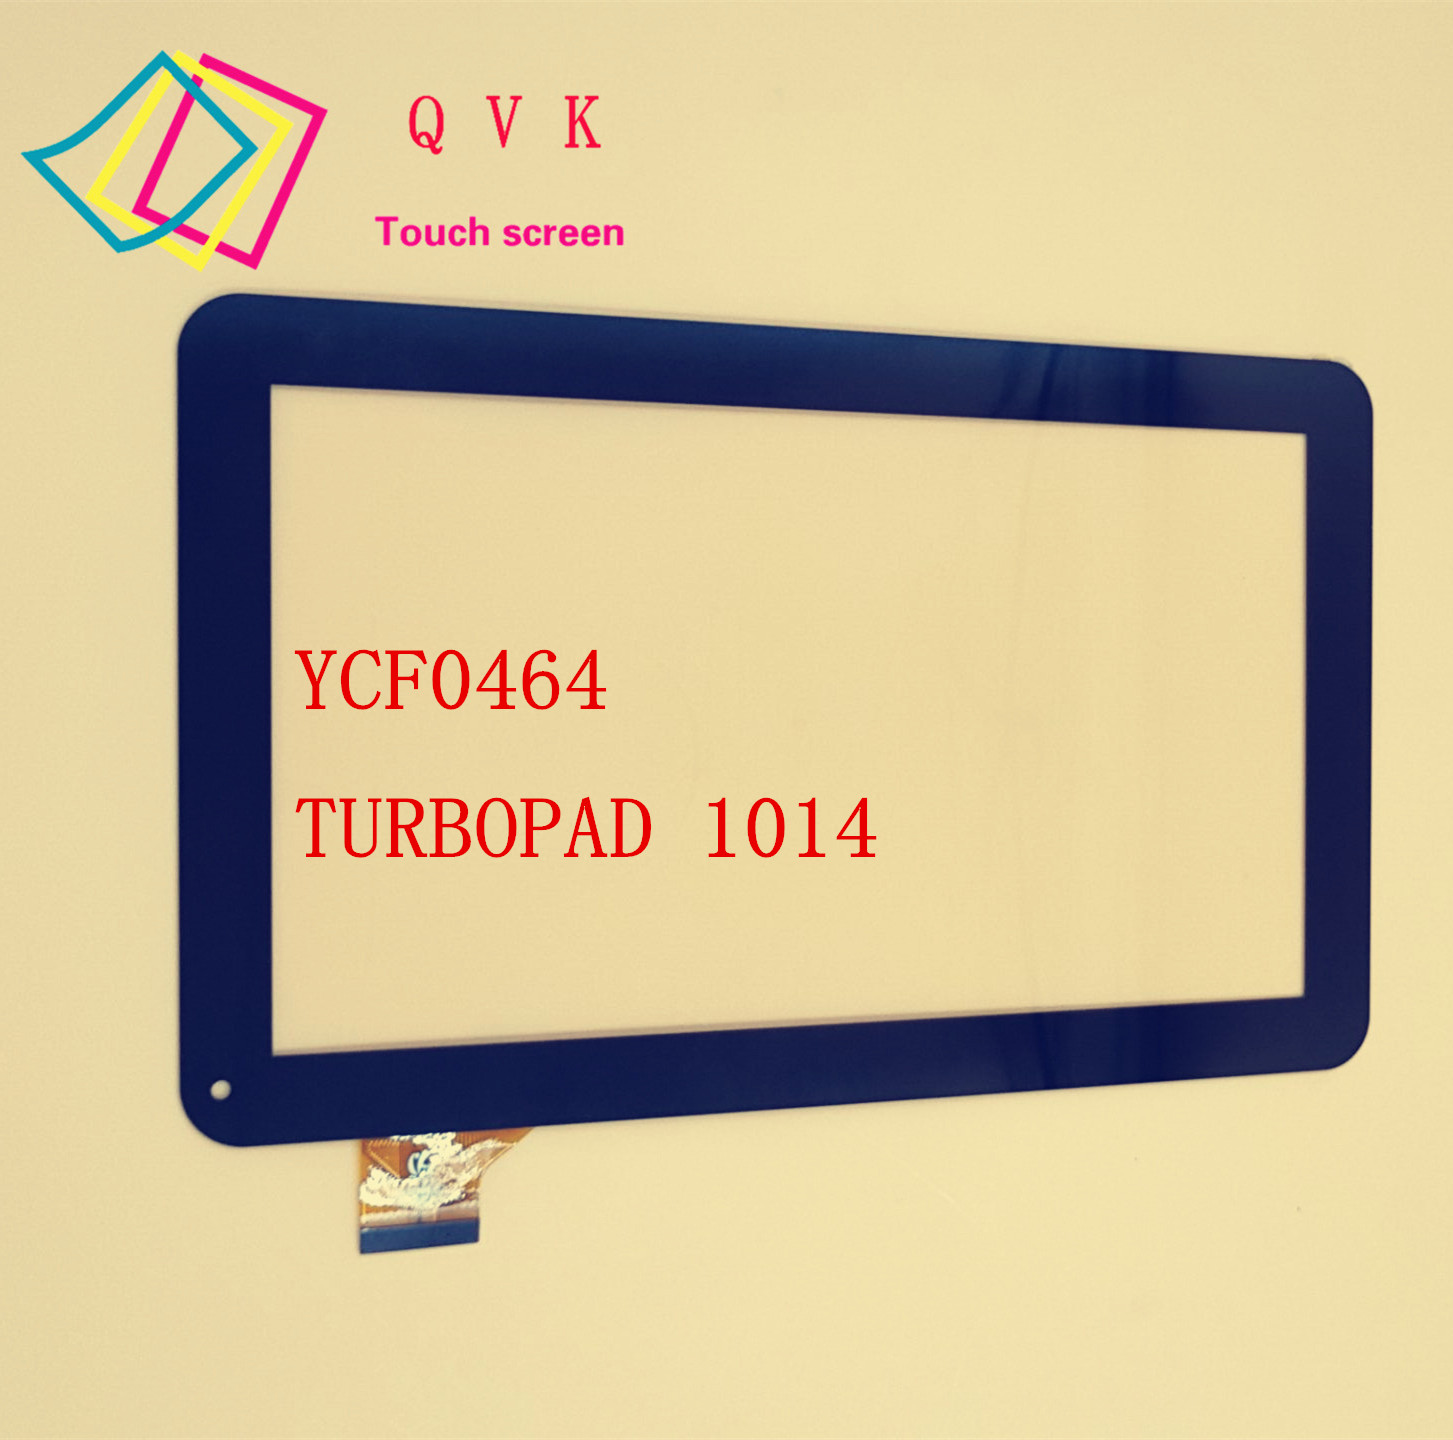 Brand New 10 1 Capacitive YCF0464 A for TURBOPAD 1014 Digma ids10 Touch Screen Panel Touchscreen